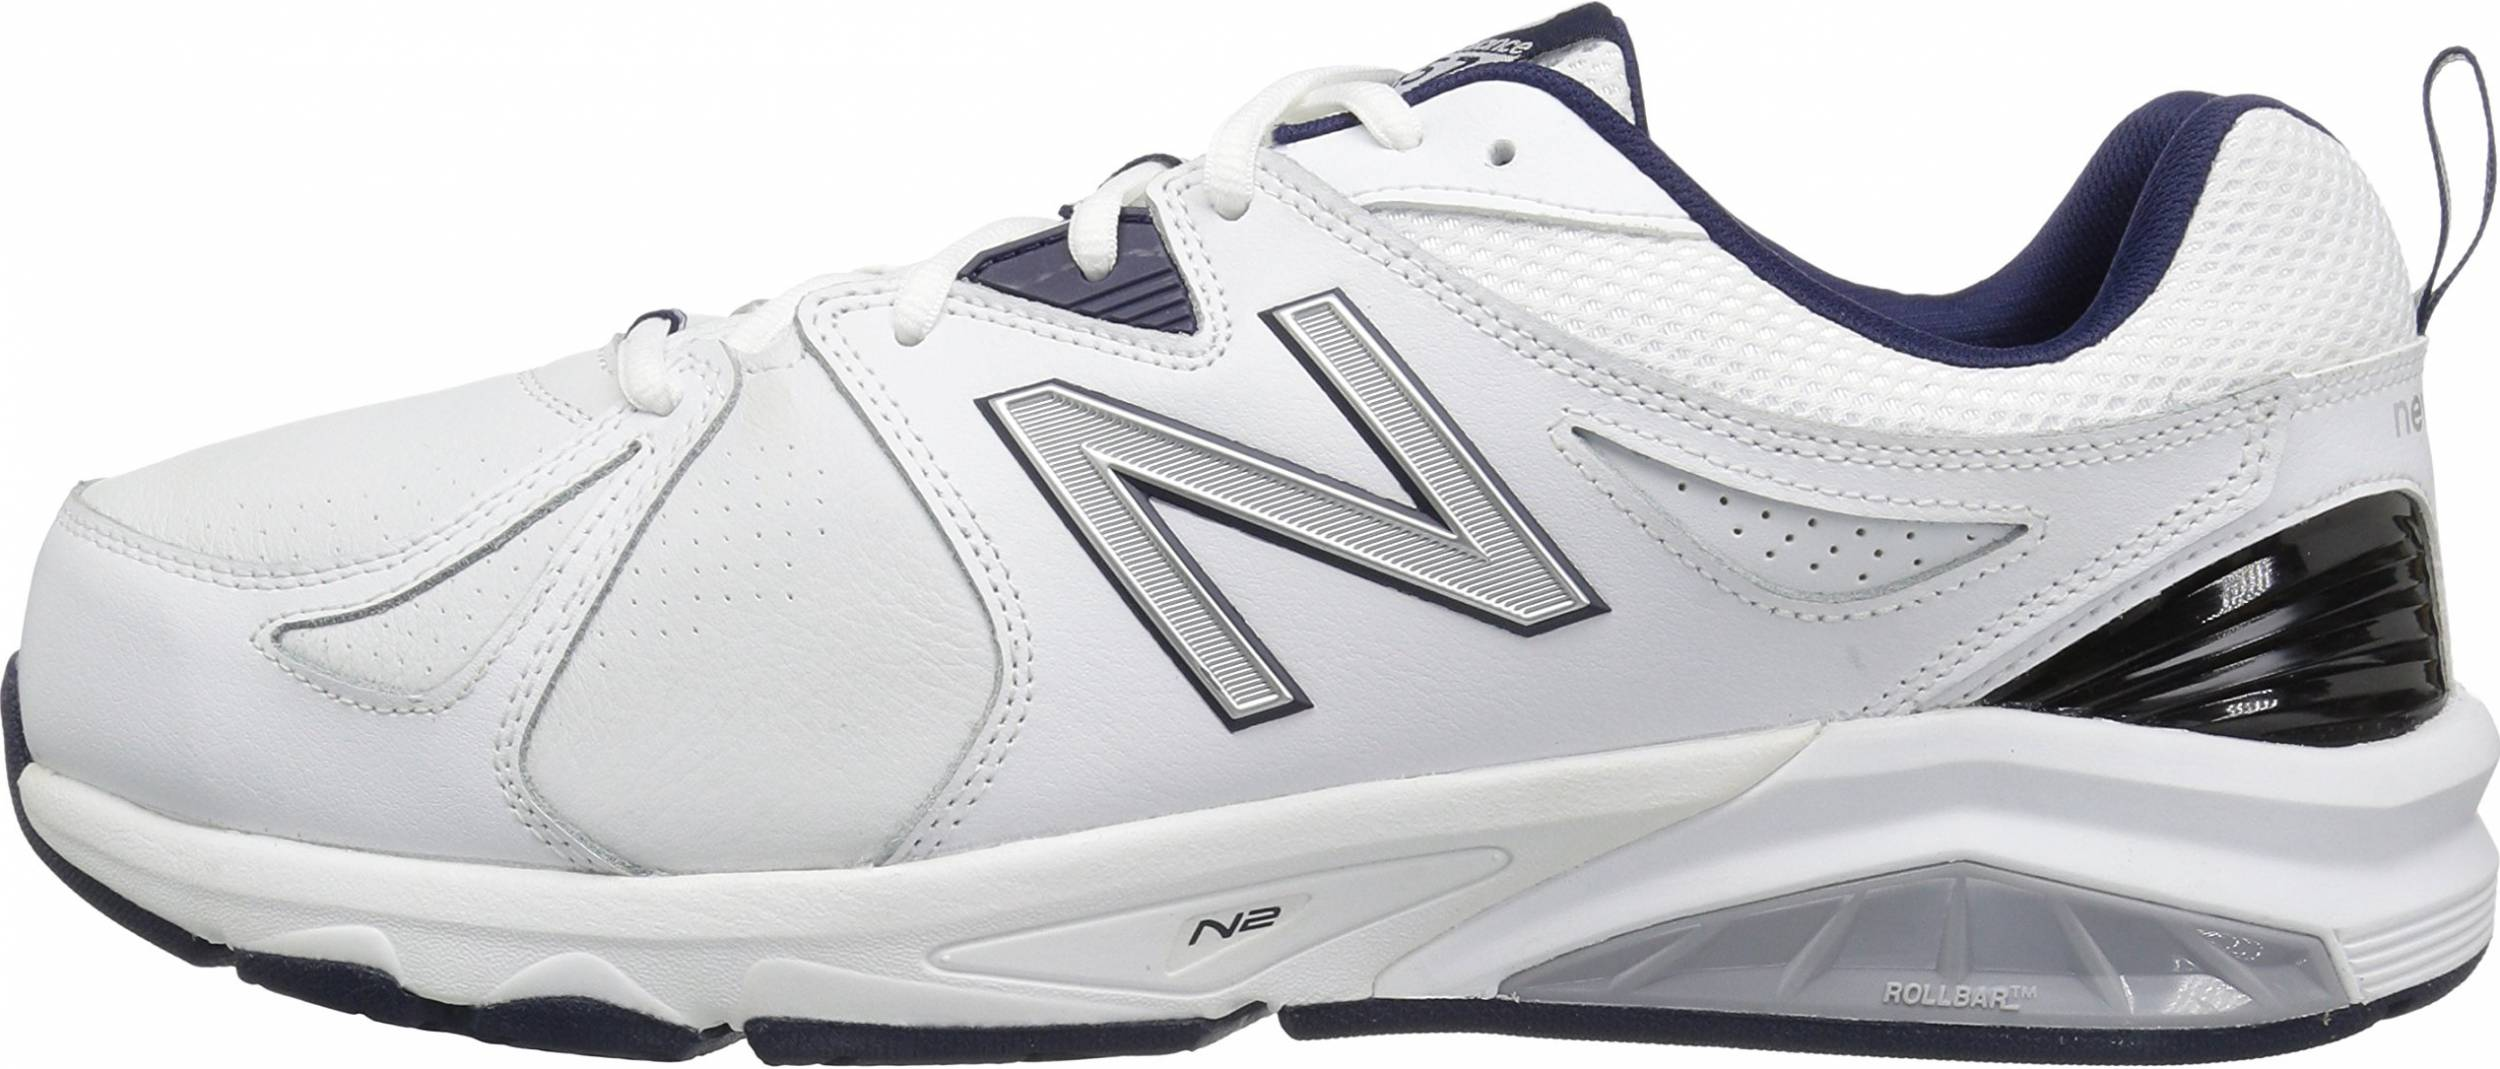 Only $72 + Review of New Balance 857 v2